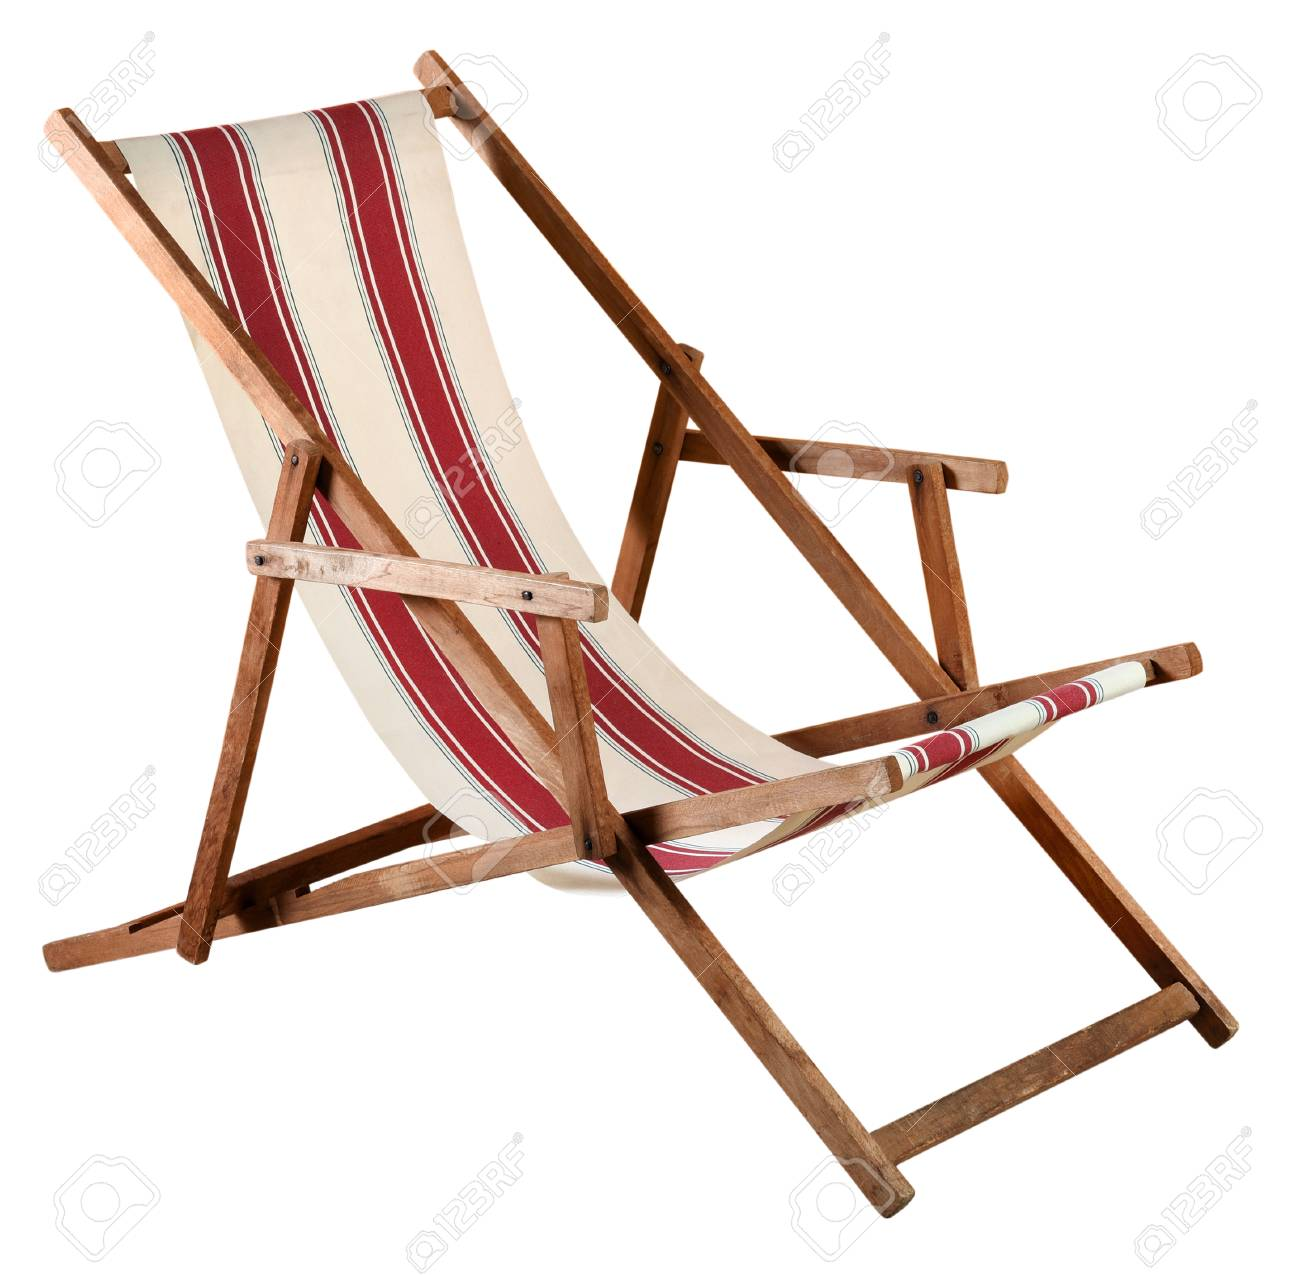 Folding Wooden Deckchair Or Beach Chair With Striped Red And